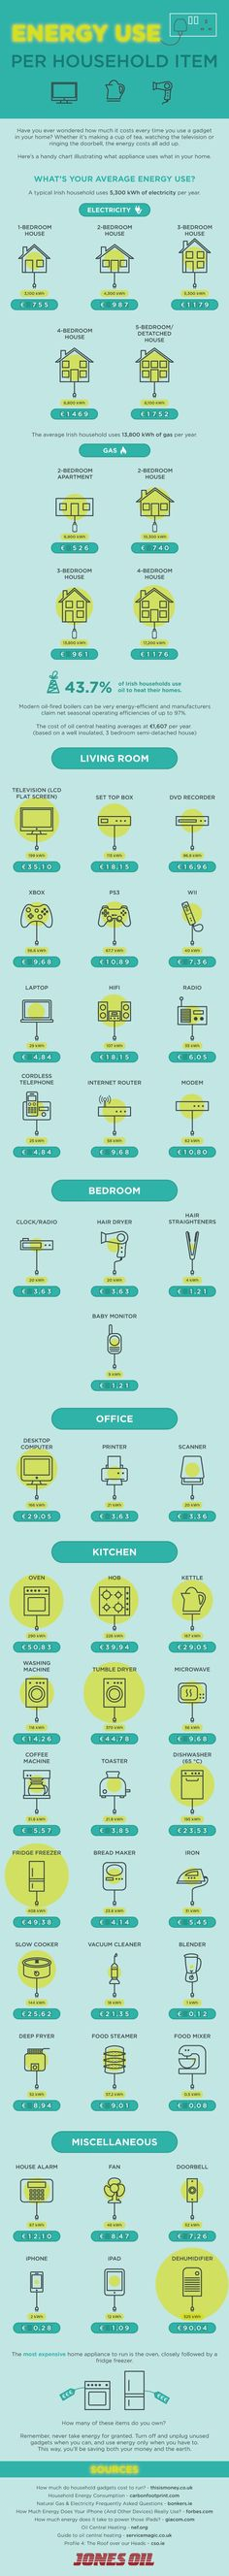 Energy Use Per Household Item [Infographic] image energy use per household item11